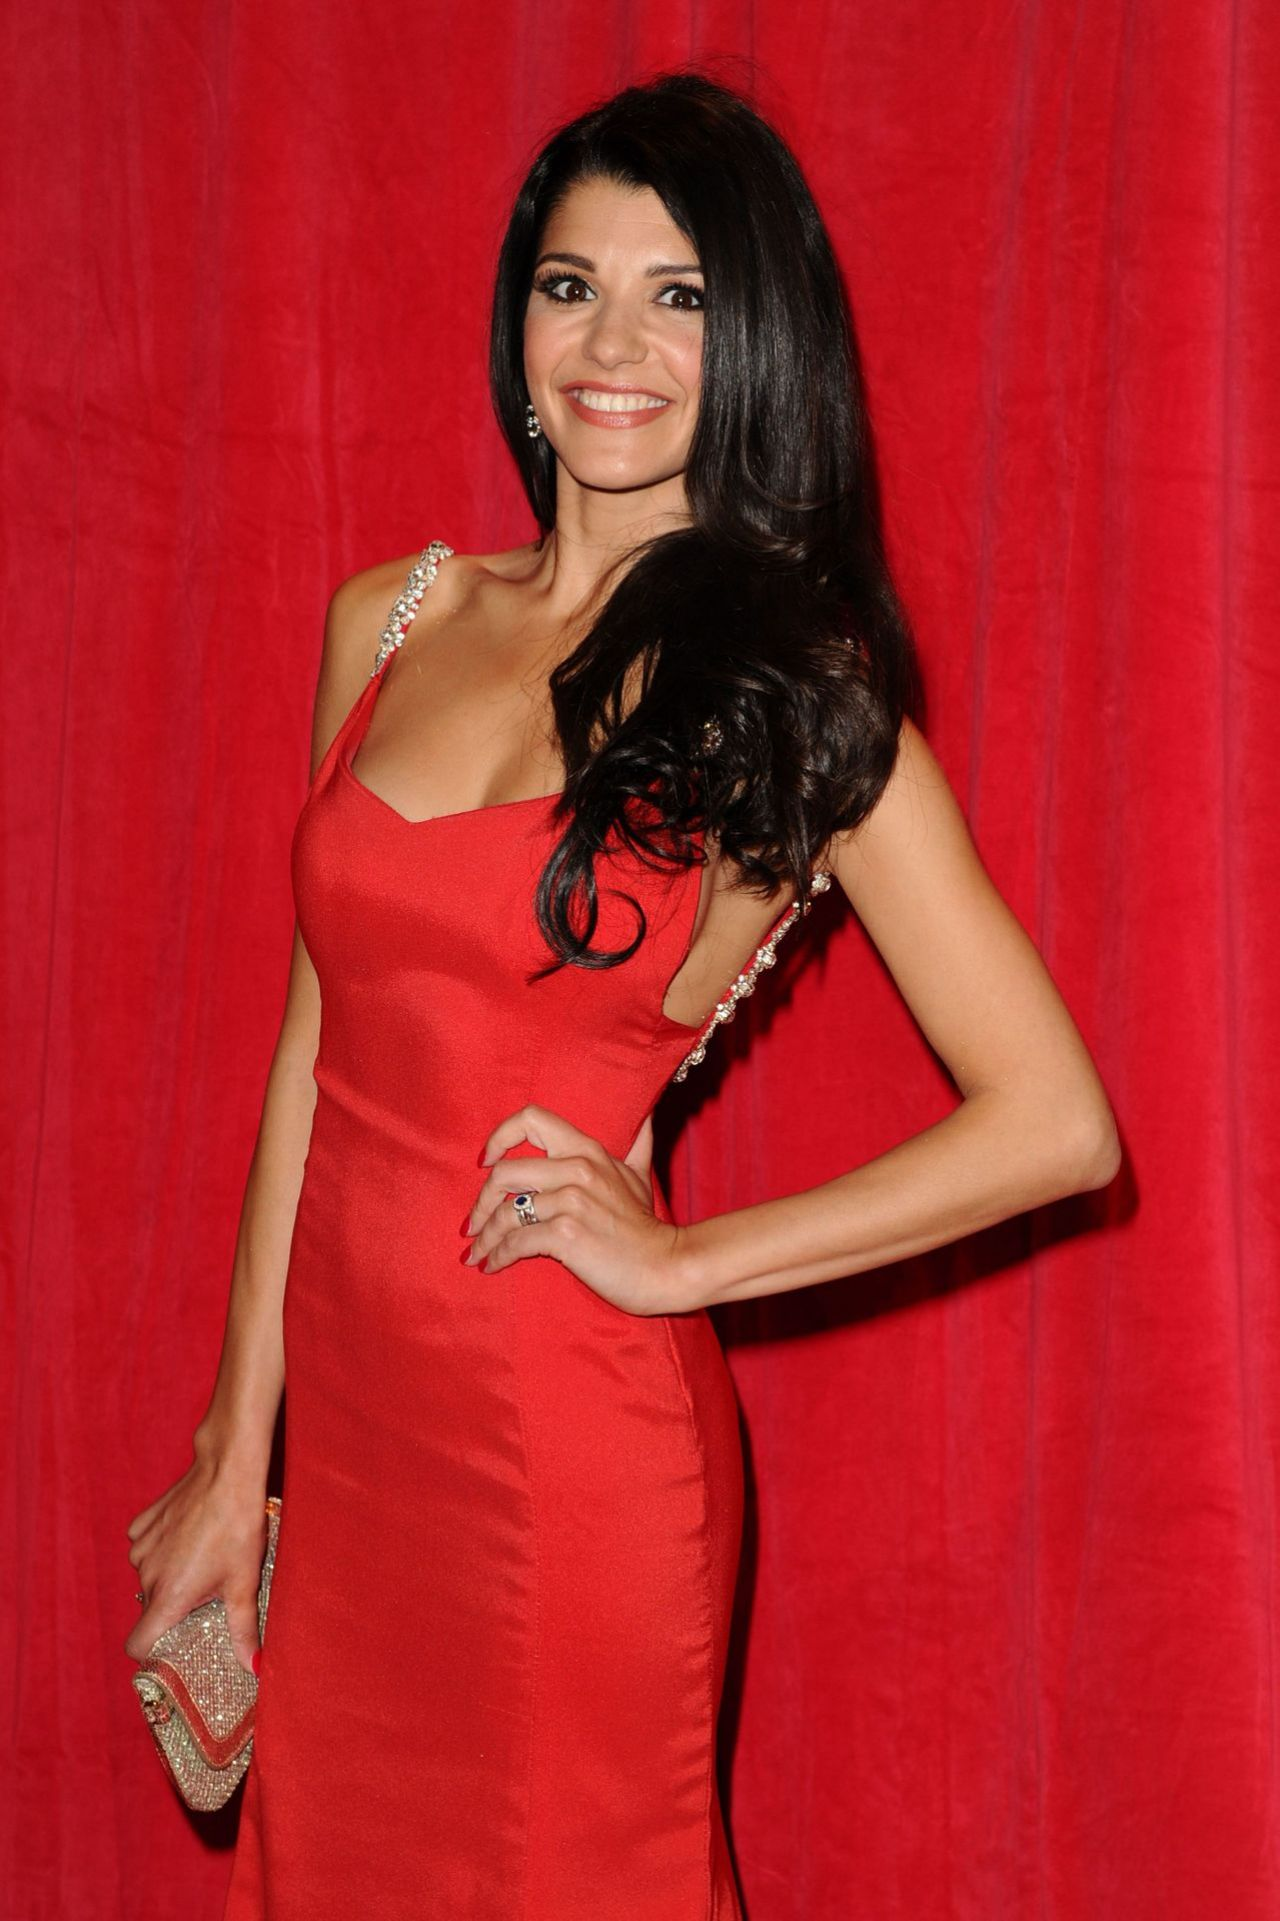 Natalie Anderson - 2014 British Soap Awards in London